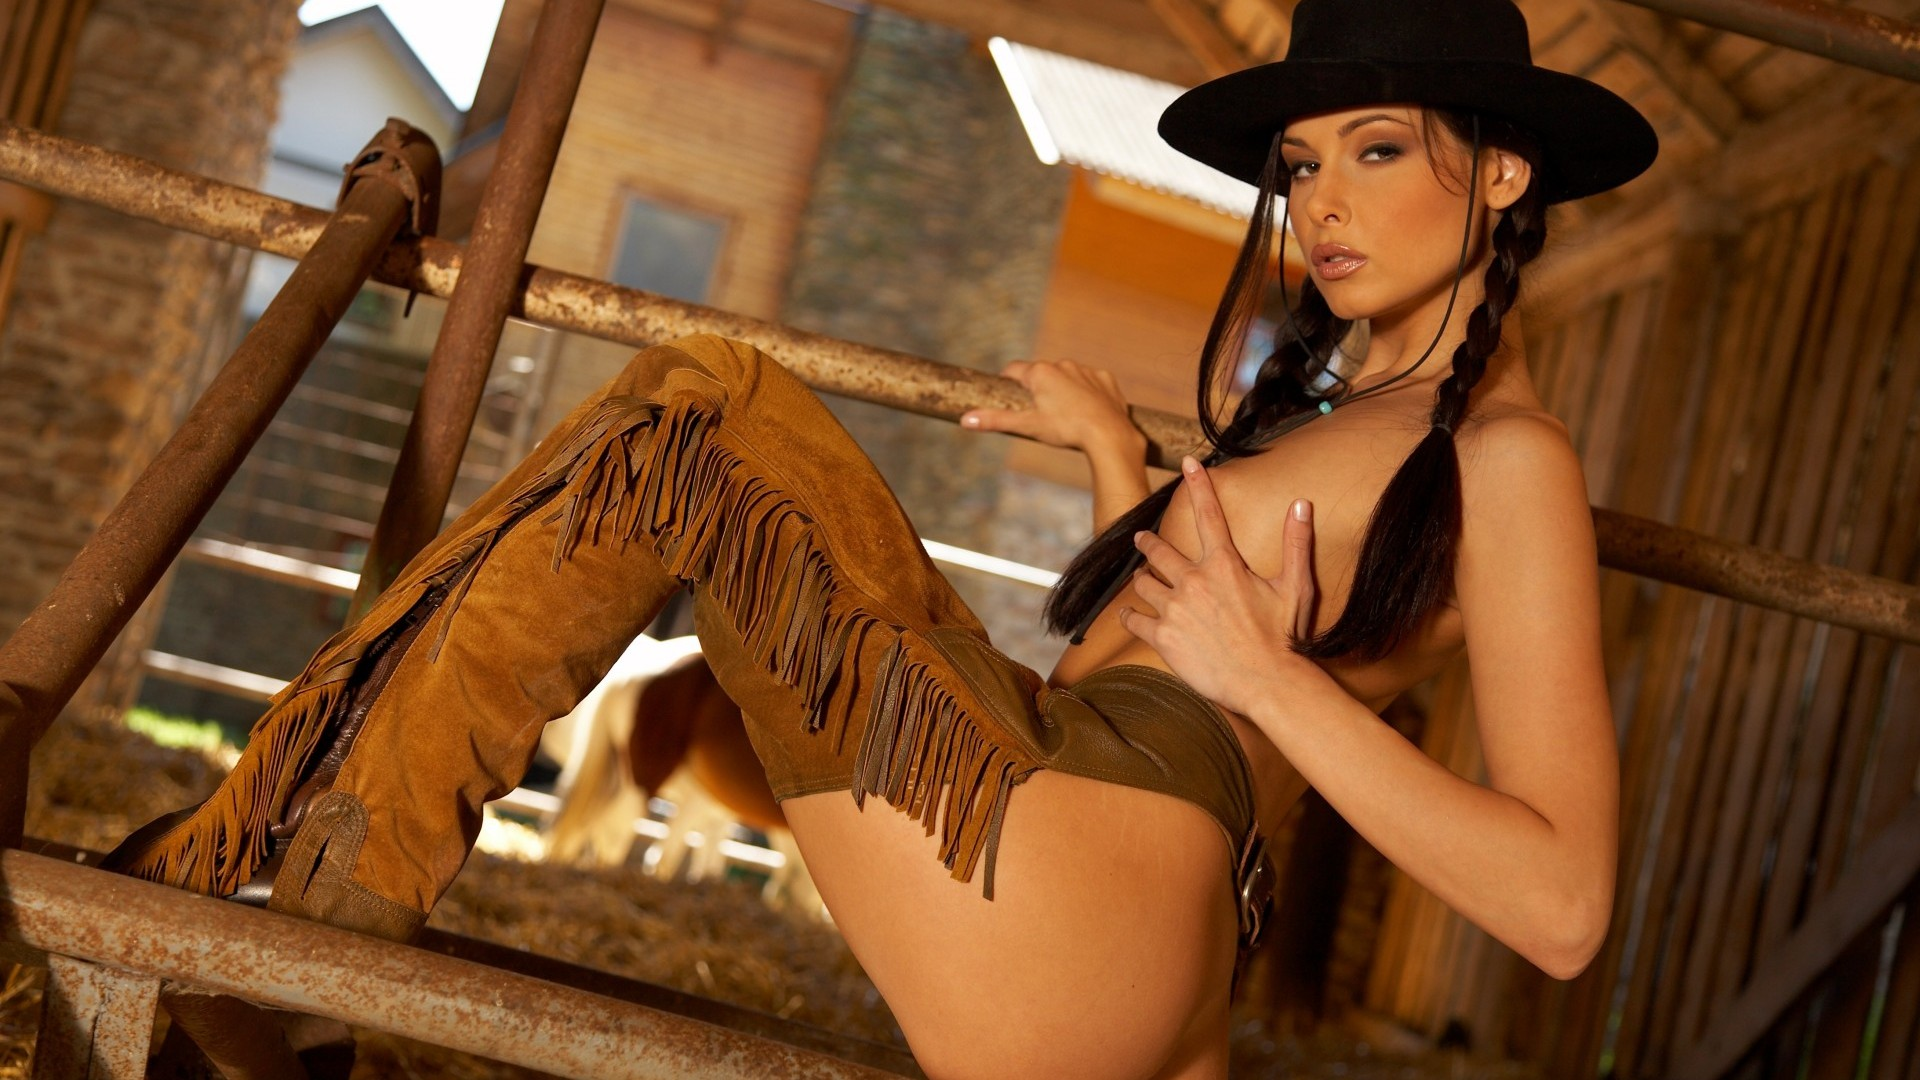 Cowboy and girl naked, adult comix free